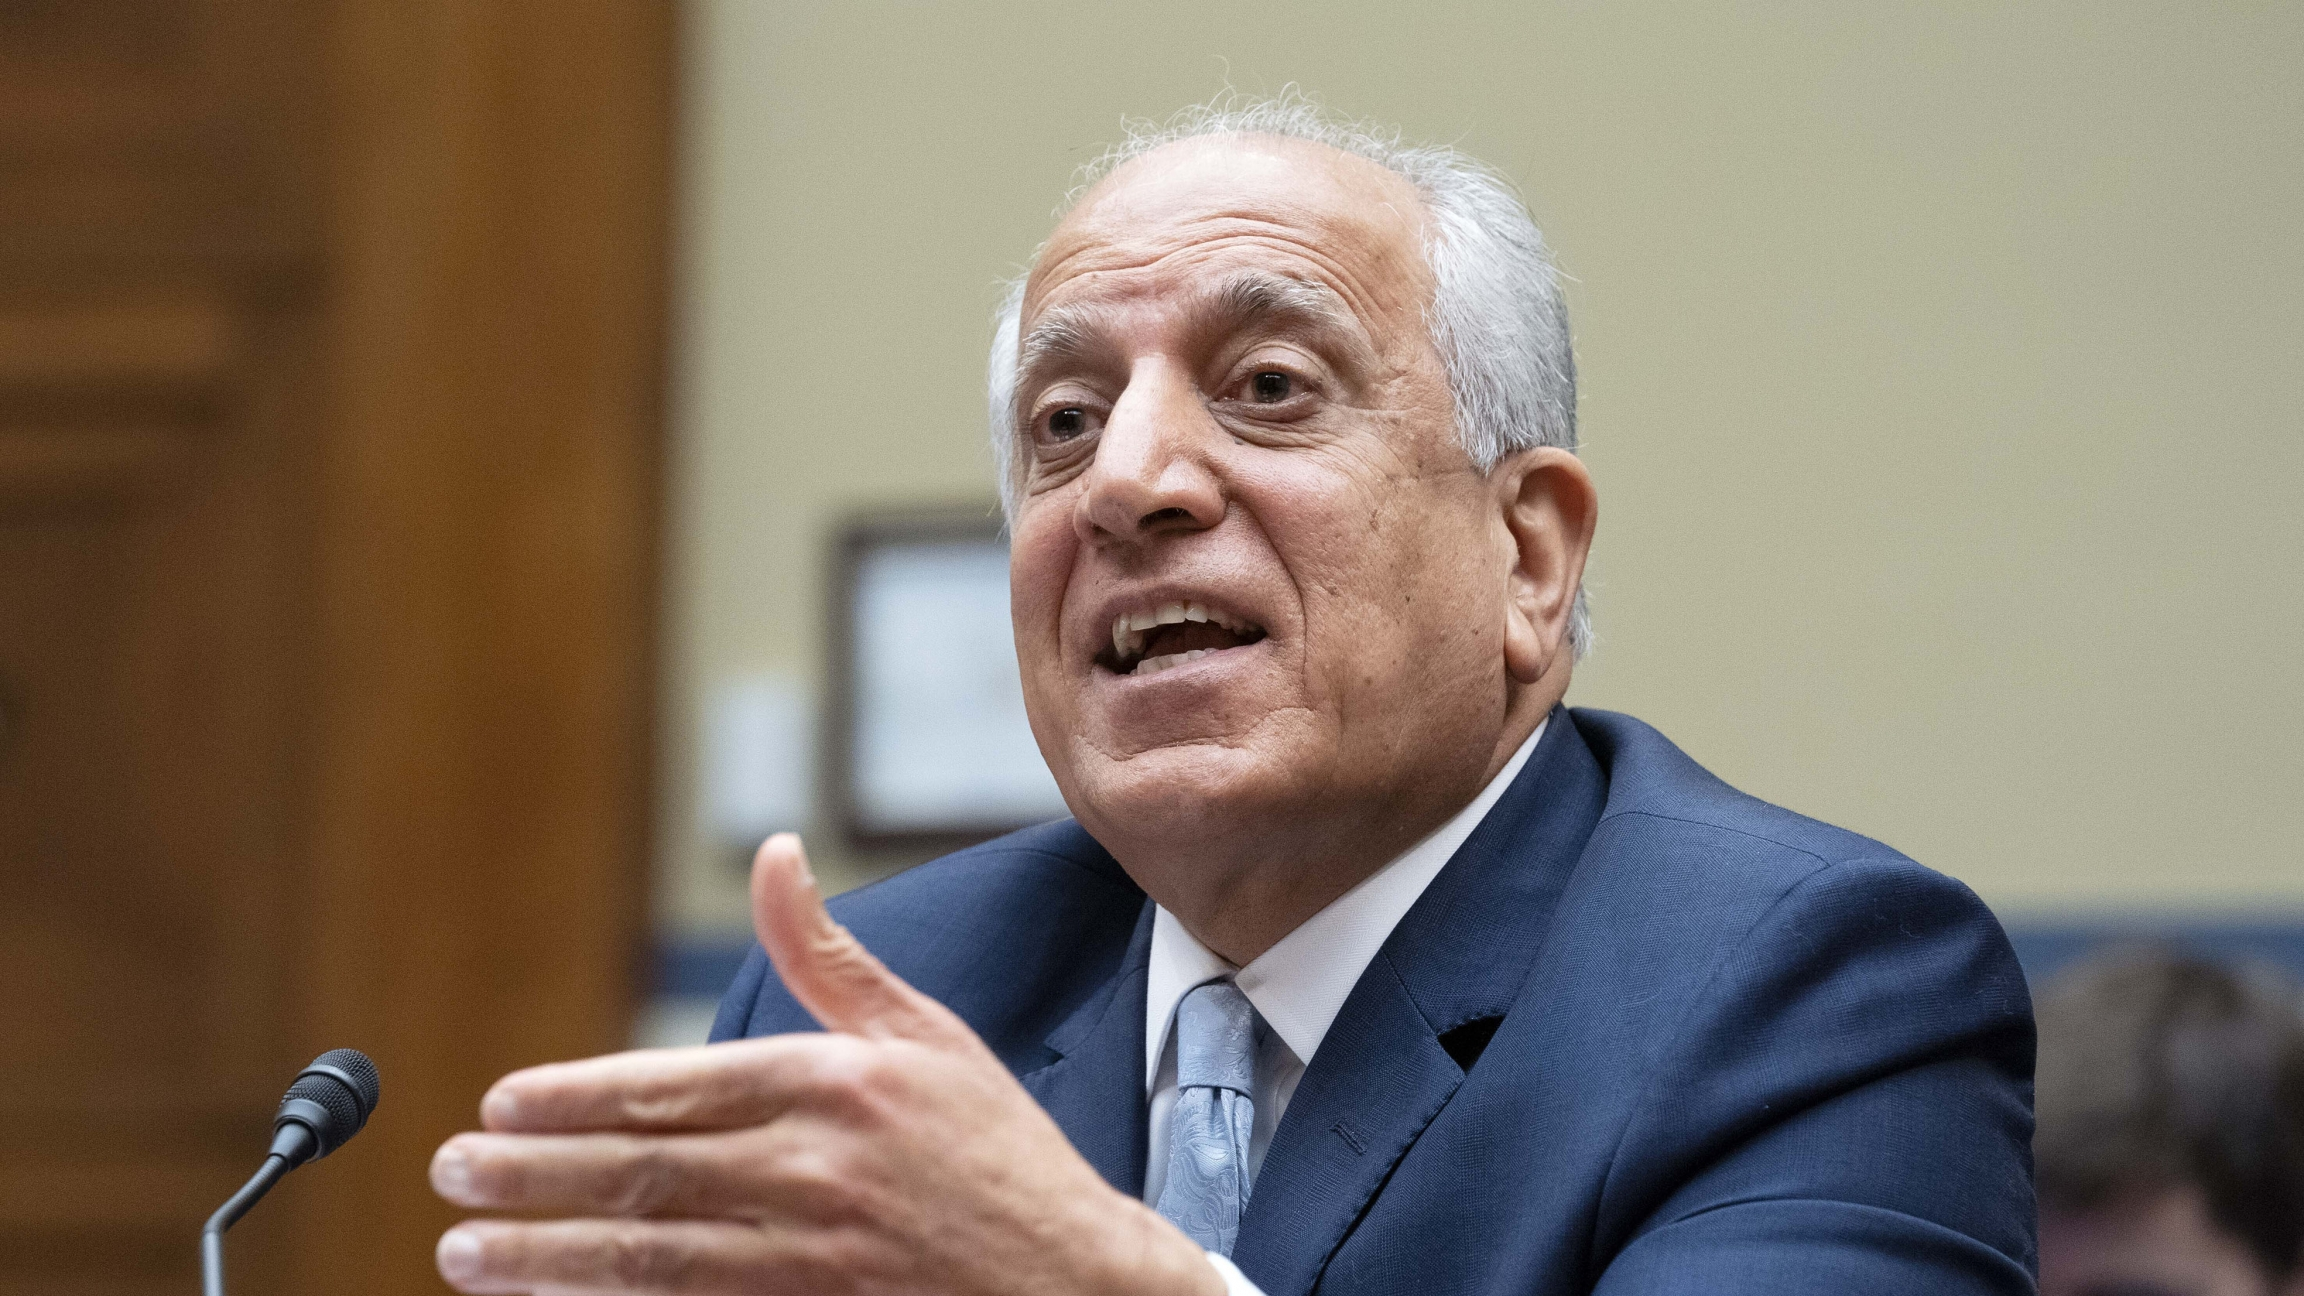 Special Representative for Afghanistan Zalmay Khalilzad speaks during the House Committee on Oversight and Reform Subcommittee hearing on Next Steps for US Engagement in Afghanistan at Capitol Hill in Washington, Thursday, May 20, 2021.